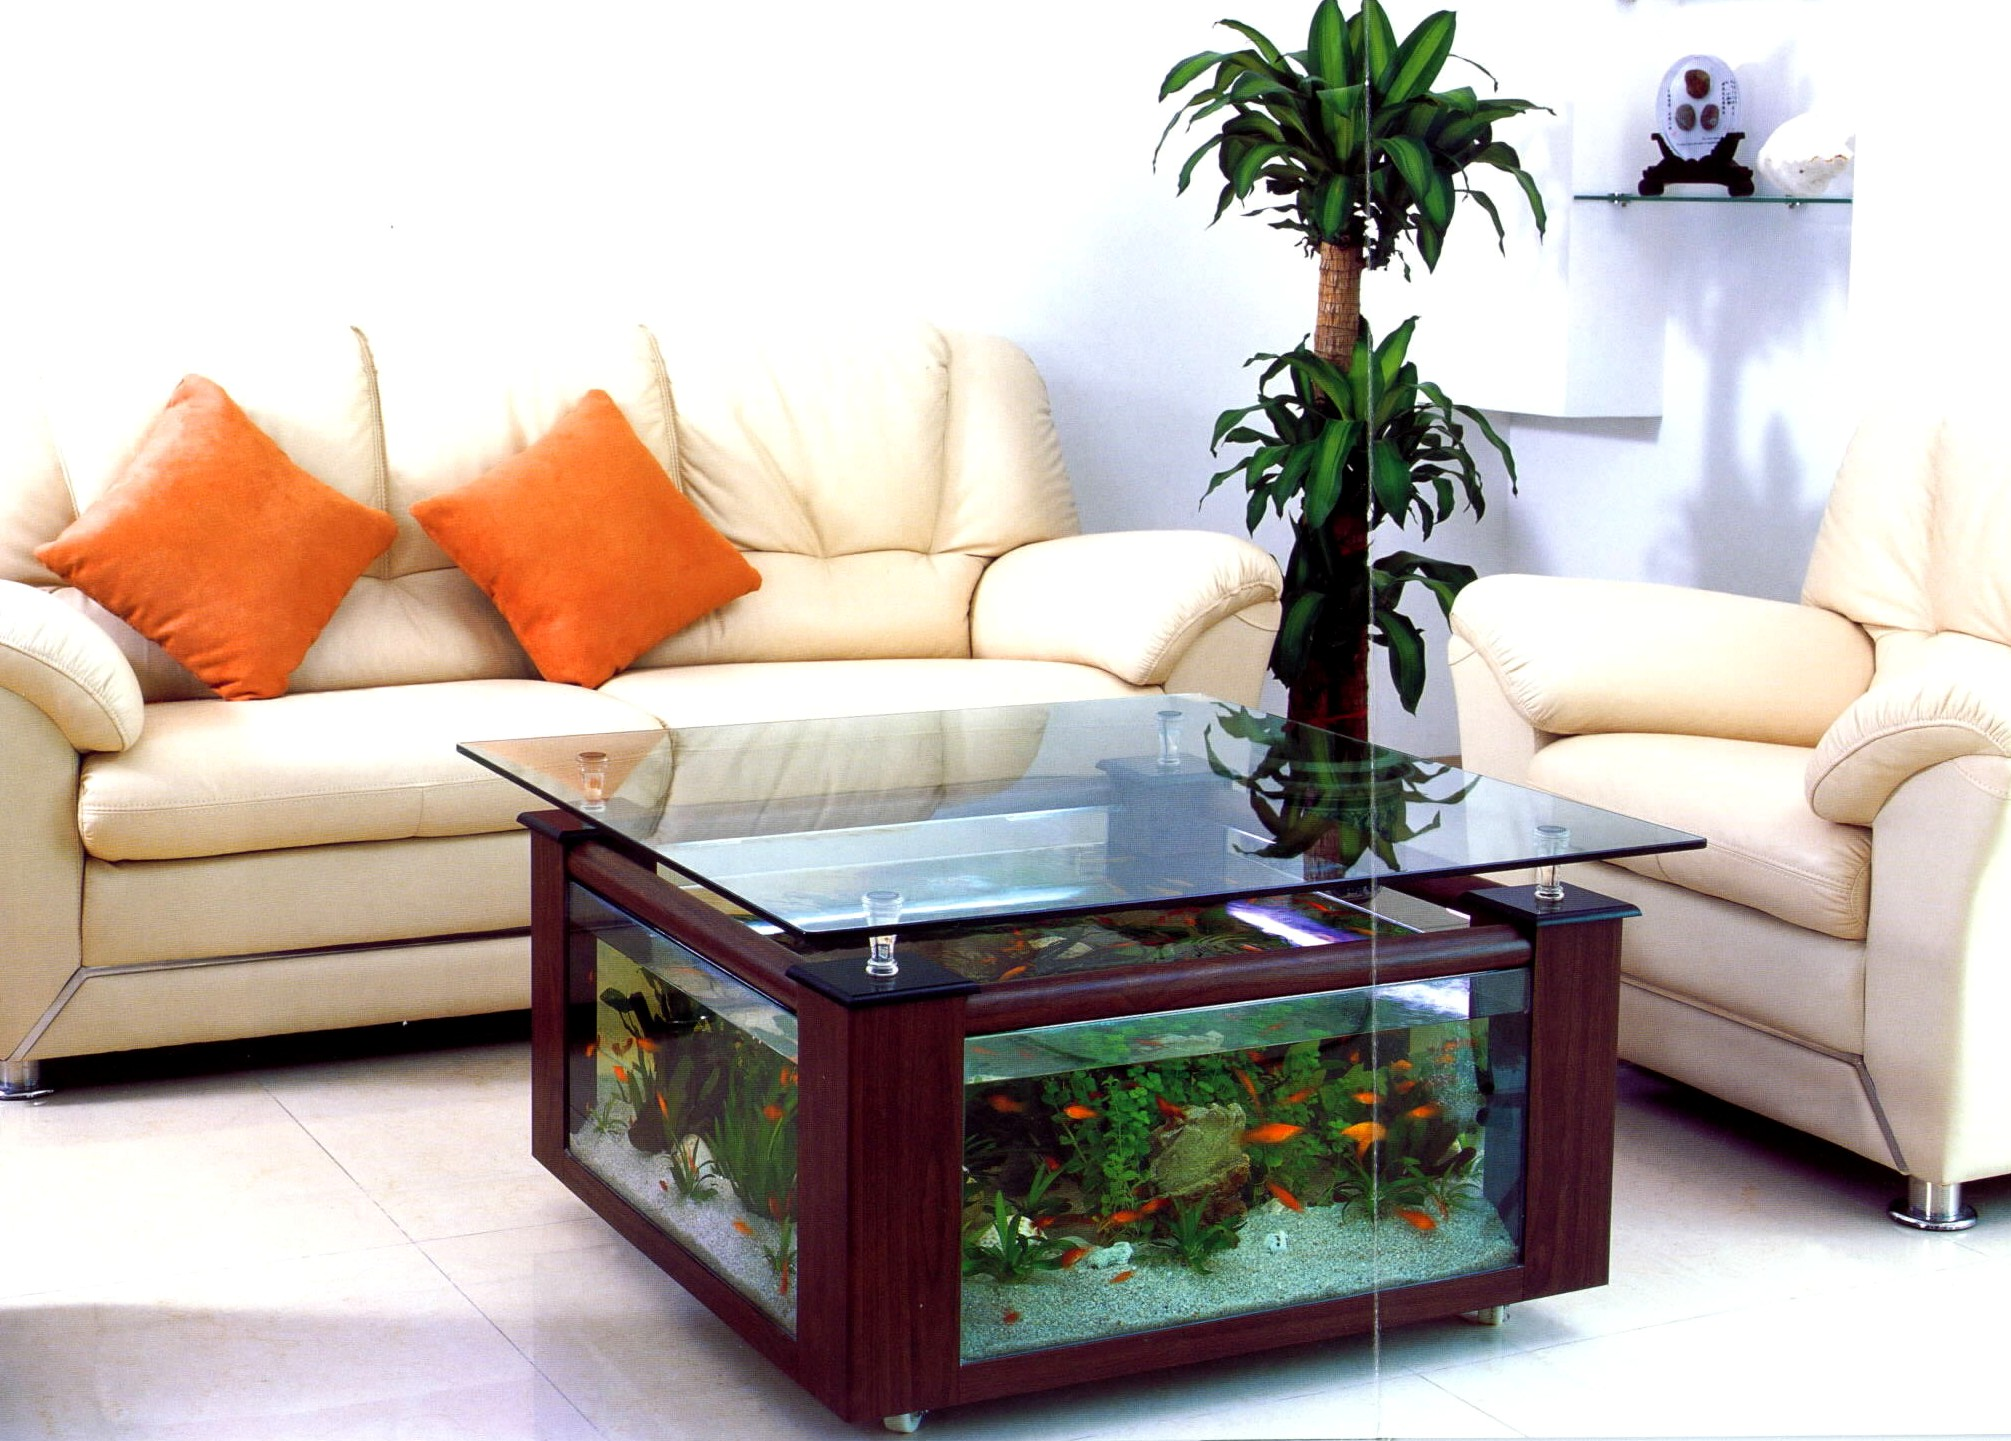 Featured Image of Creative Small Aquarium Ideas